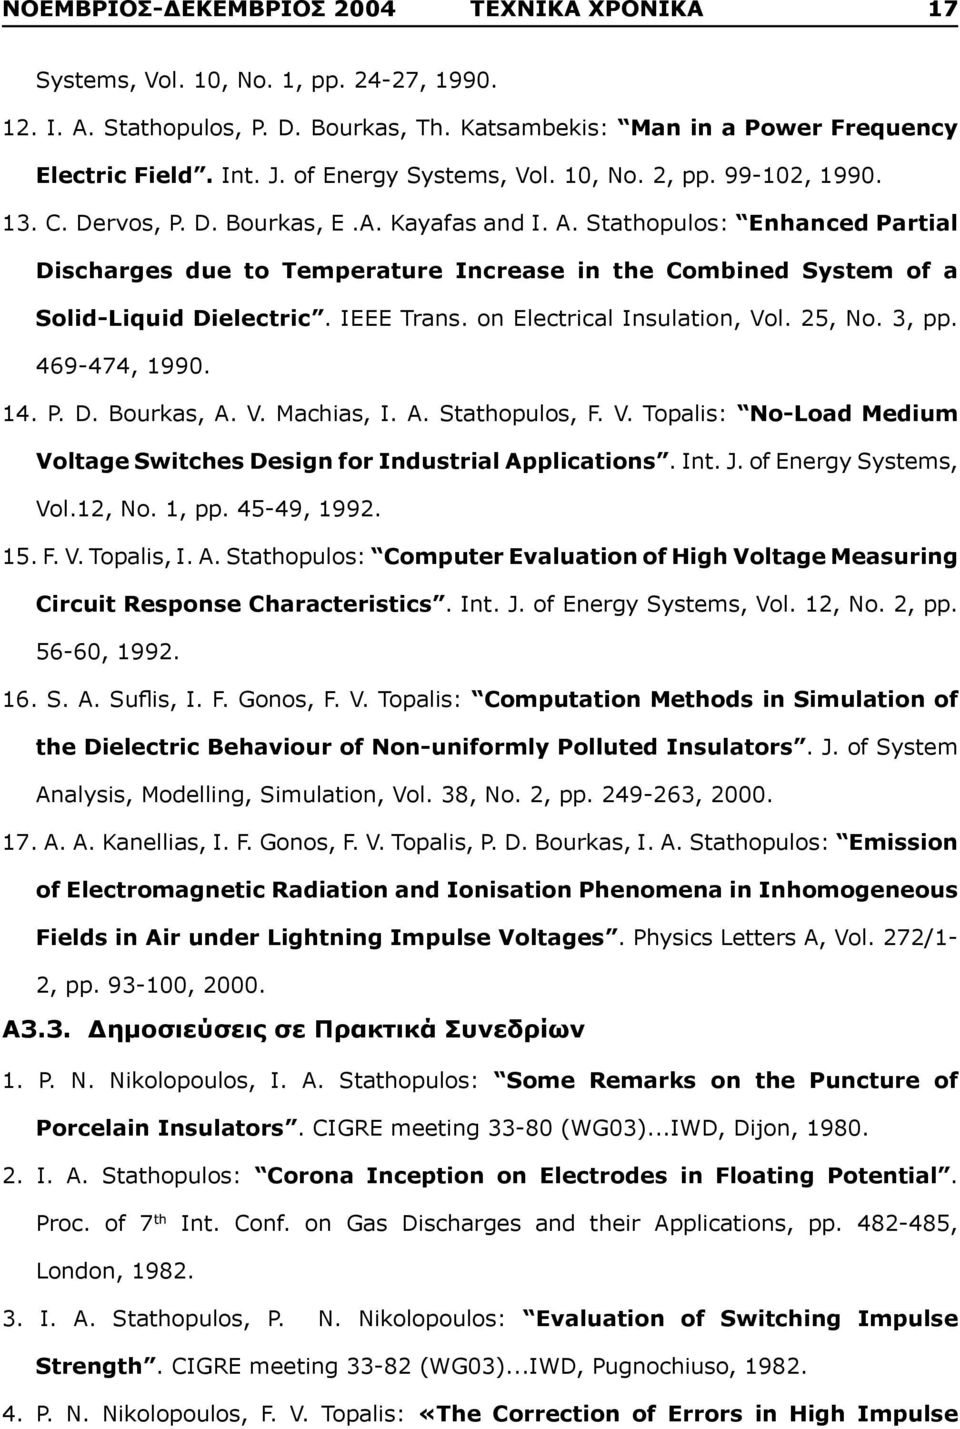 Stathopulos: Enhanced Partial Discharges due to Temperature Increase in the Combined System of a Solid-Liquid Dielectric. IEEE Trans. on Electrical Insulation, Vol. 25, No. 3, pp. 469-474, 1990. 14.